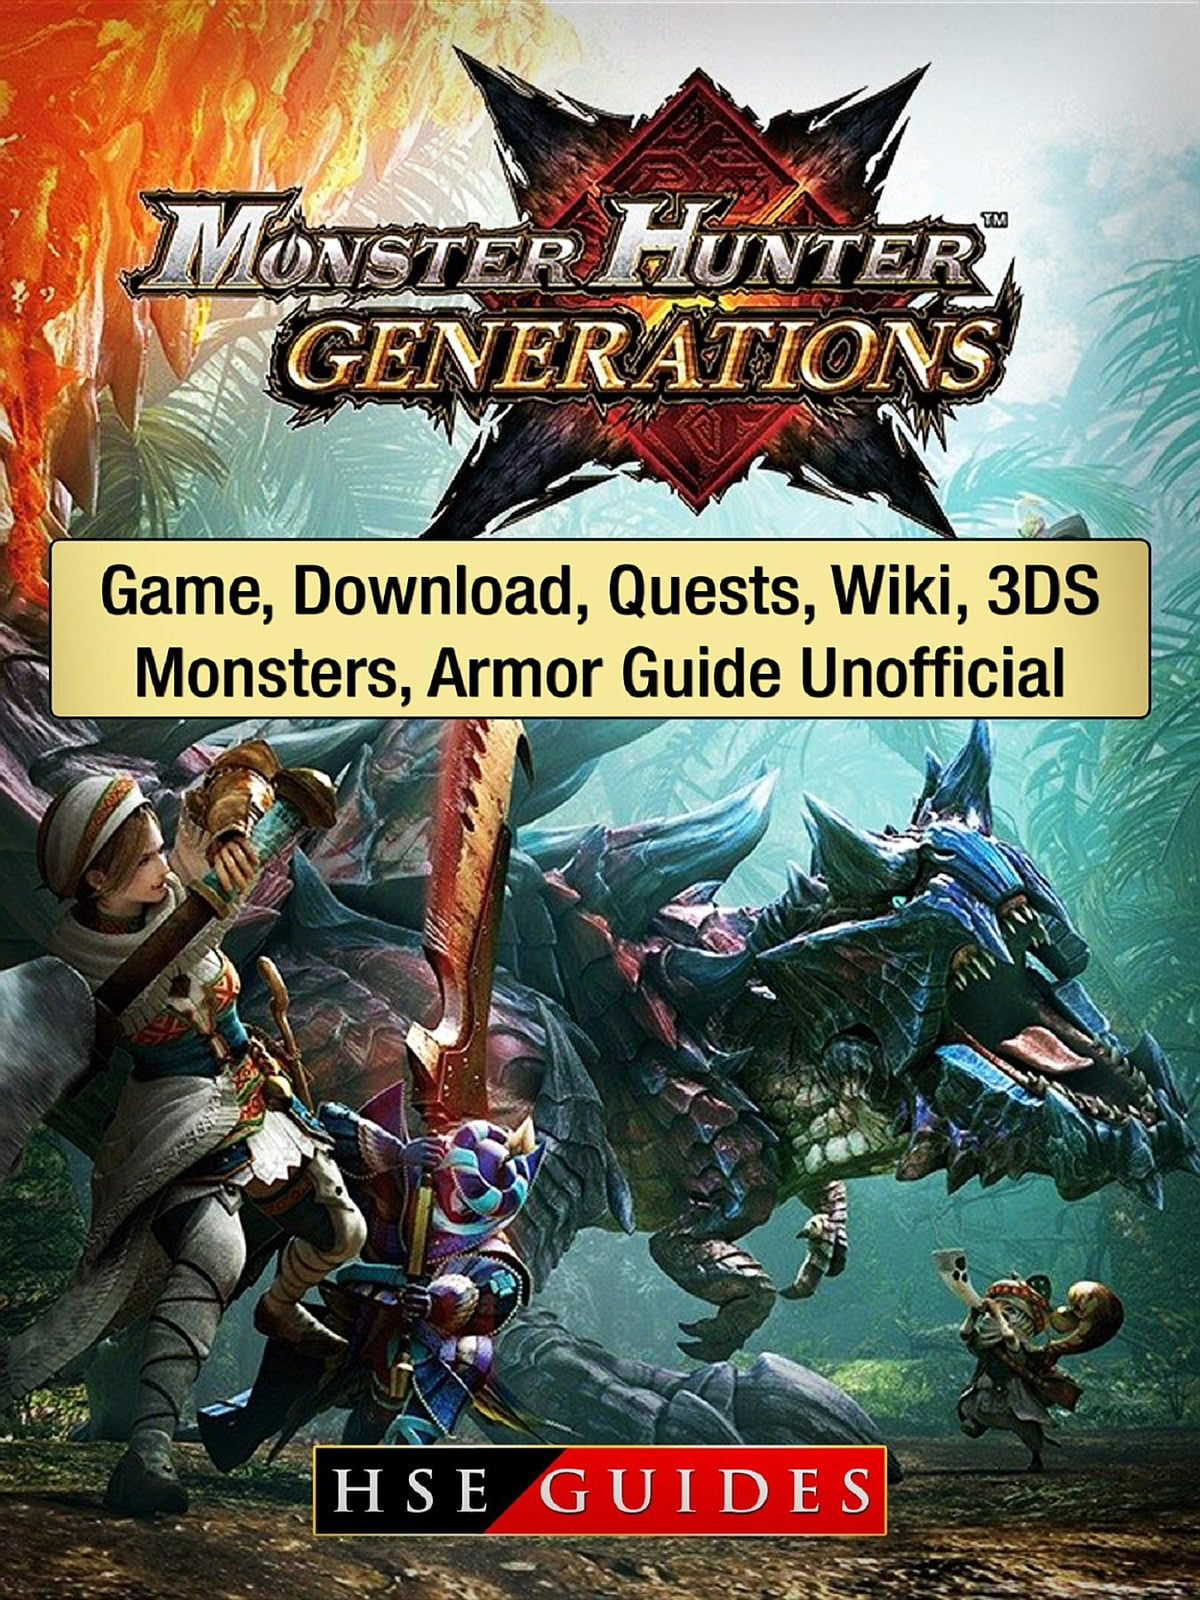 Monster Hunter Generations Game, Download, Quests, Wiki, 3DS, Monsters,  Armor Guide Unofficial ebook by HSE Guides - Rakuten Kobo